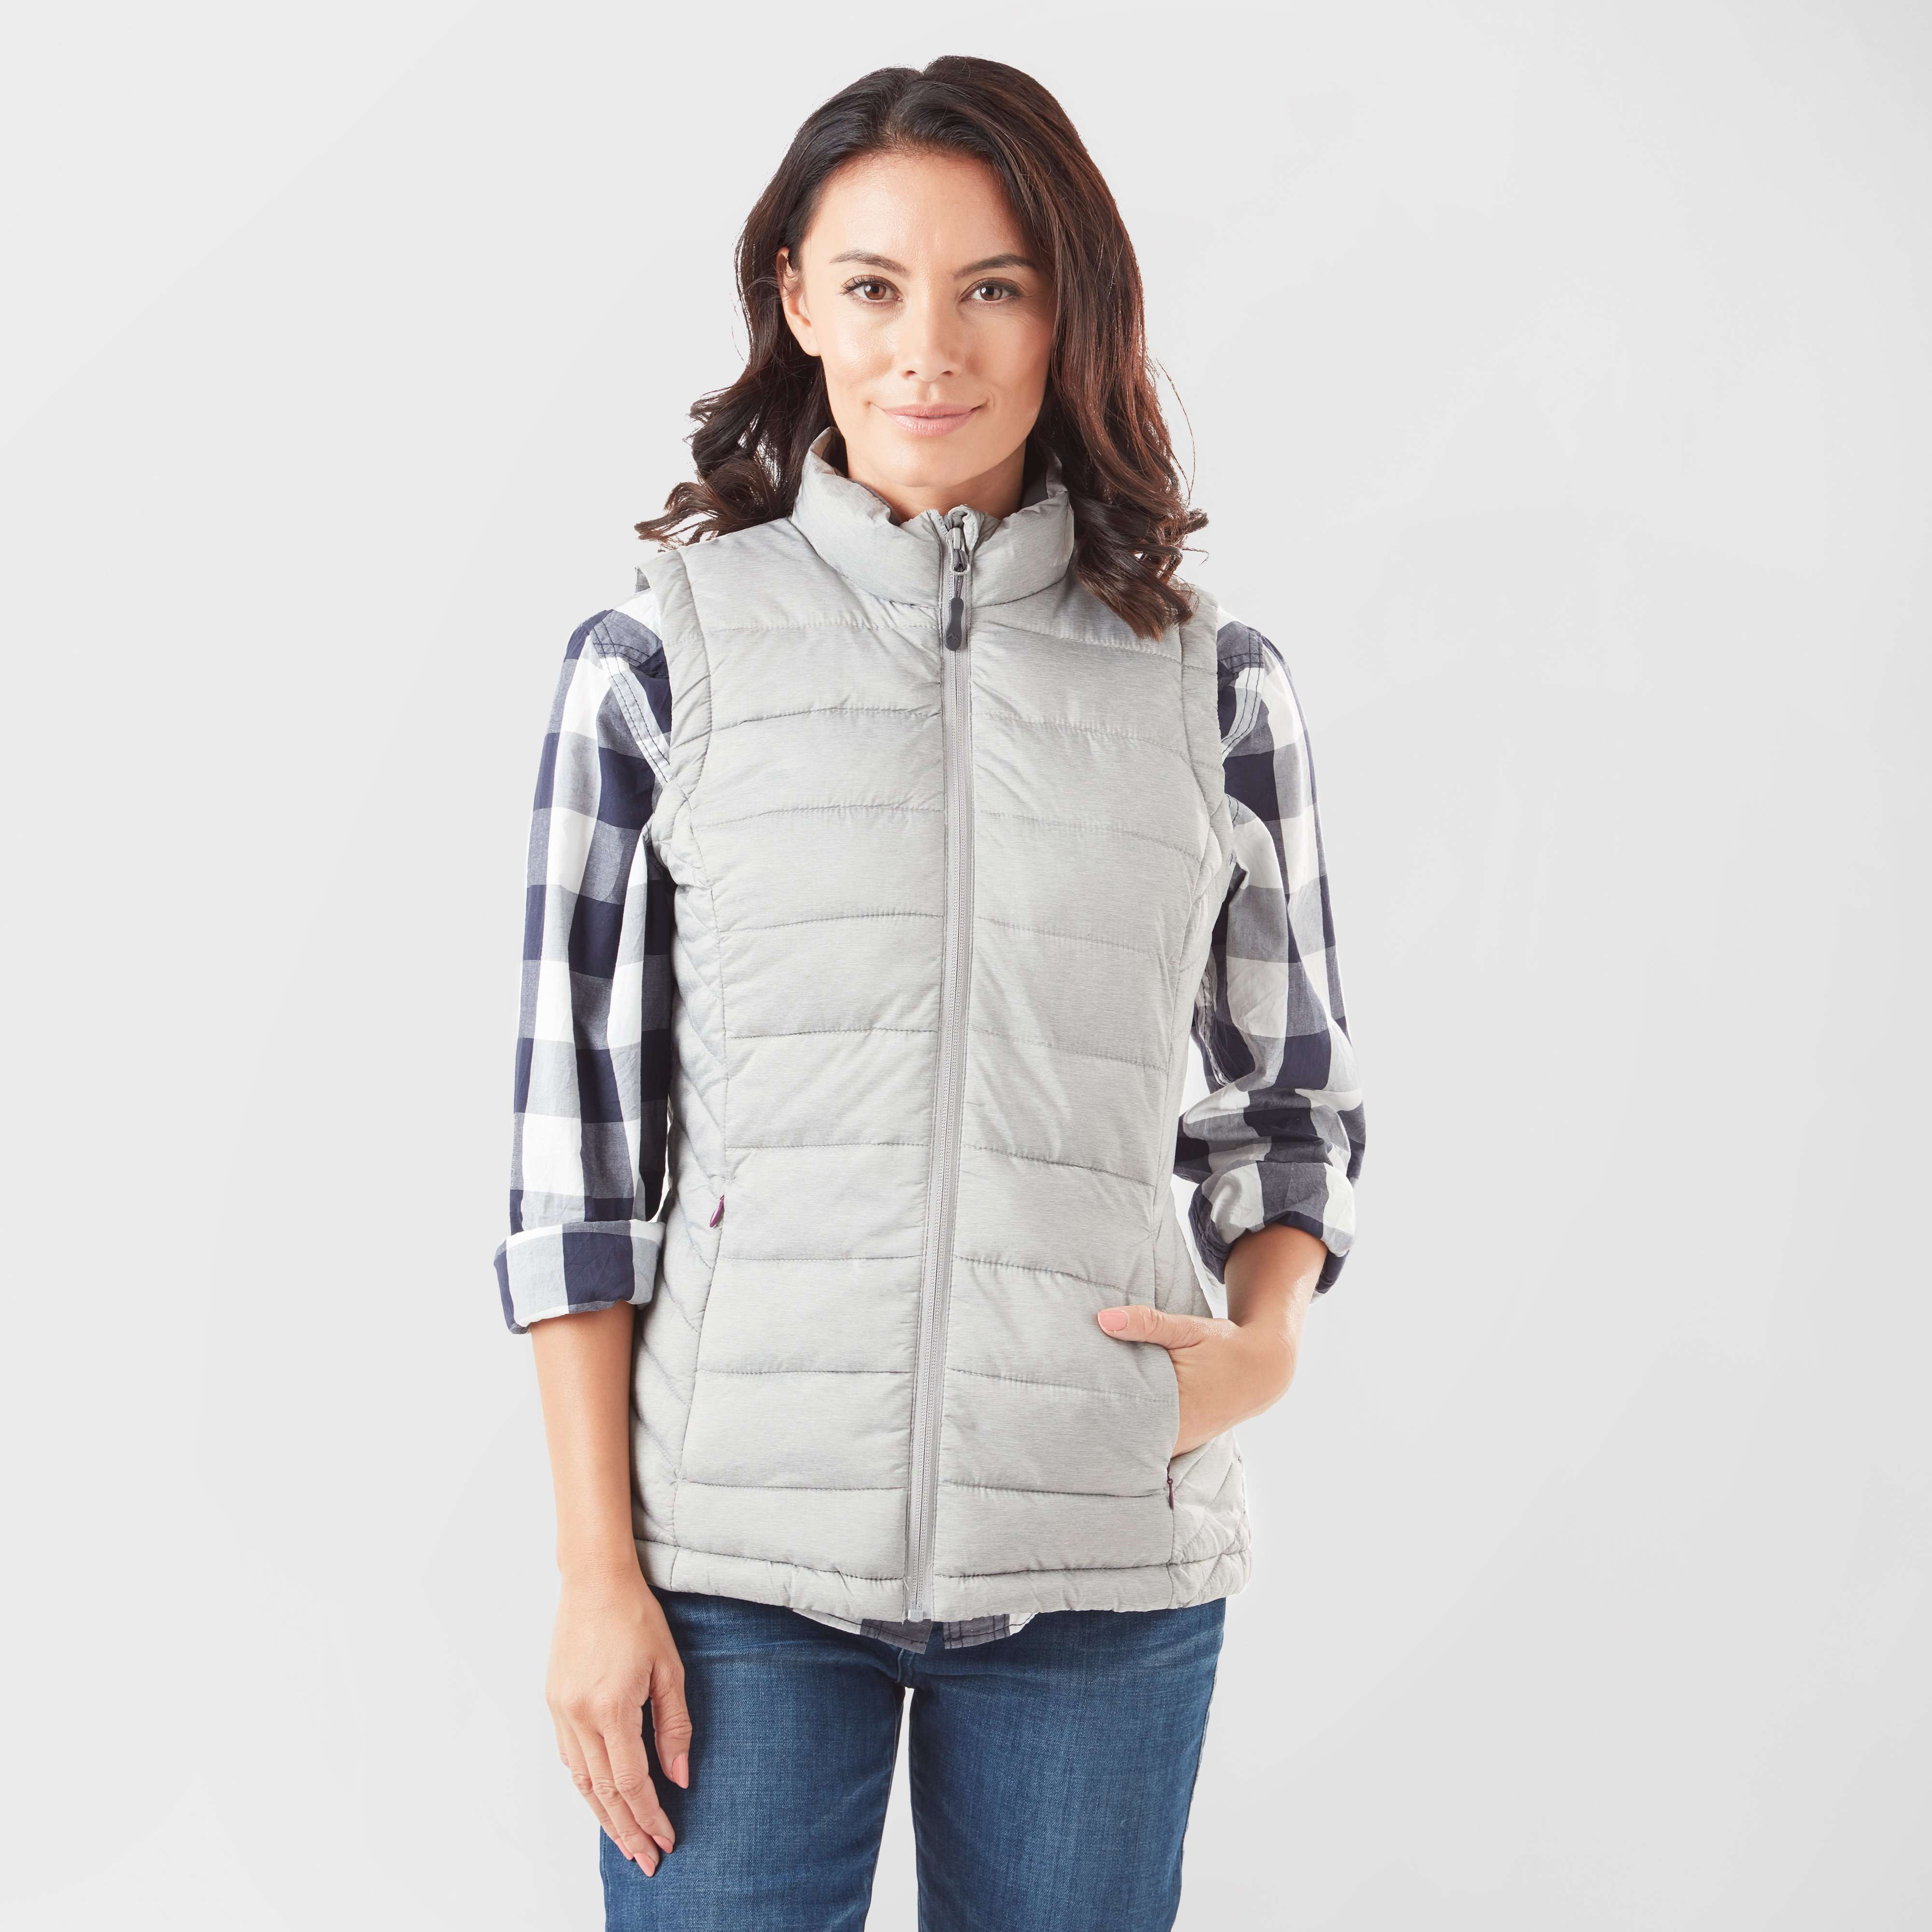 PETER STORM Women's Light Gilet